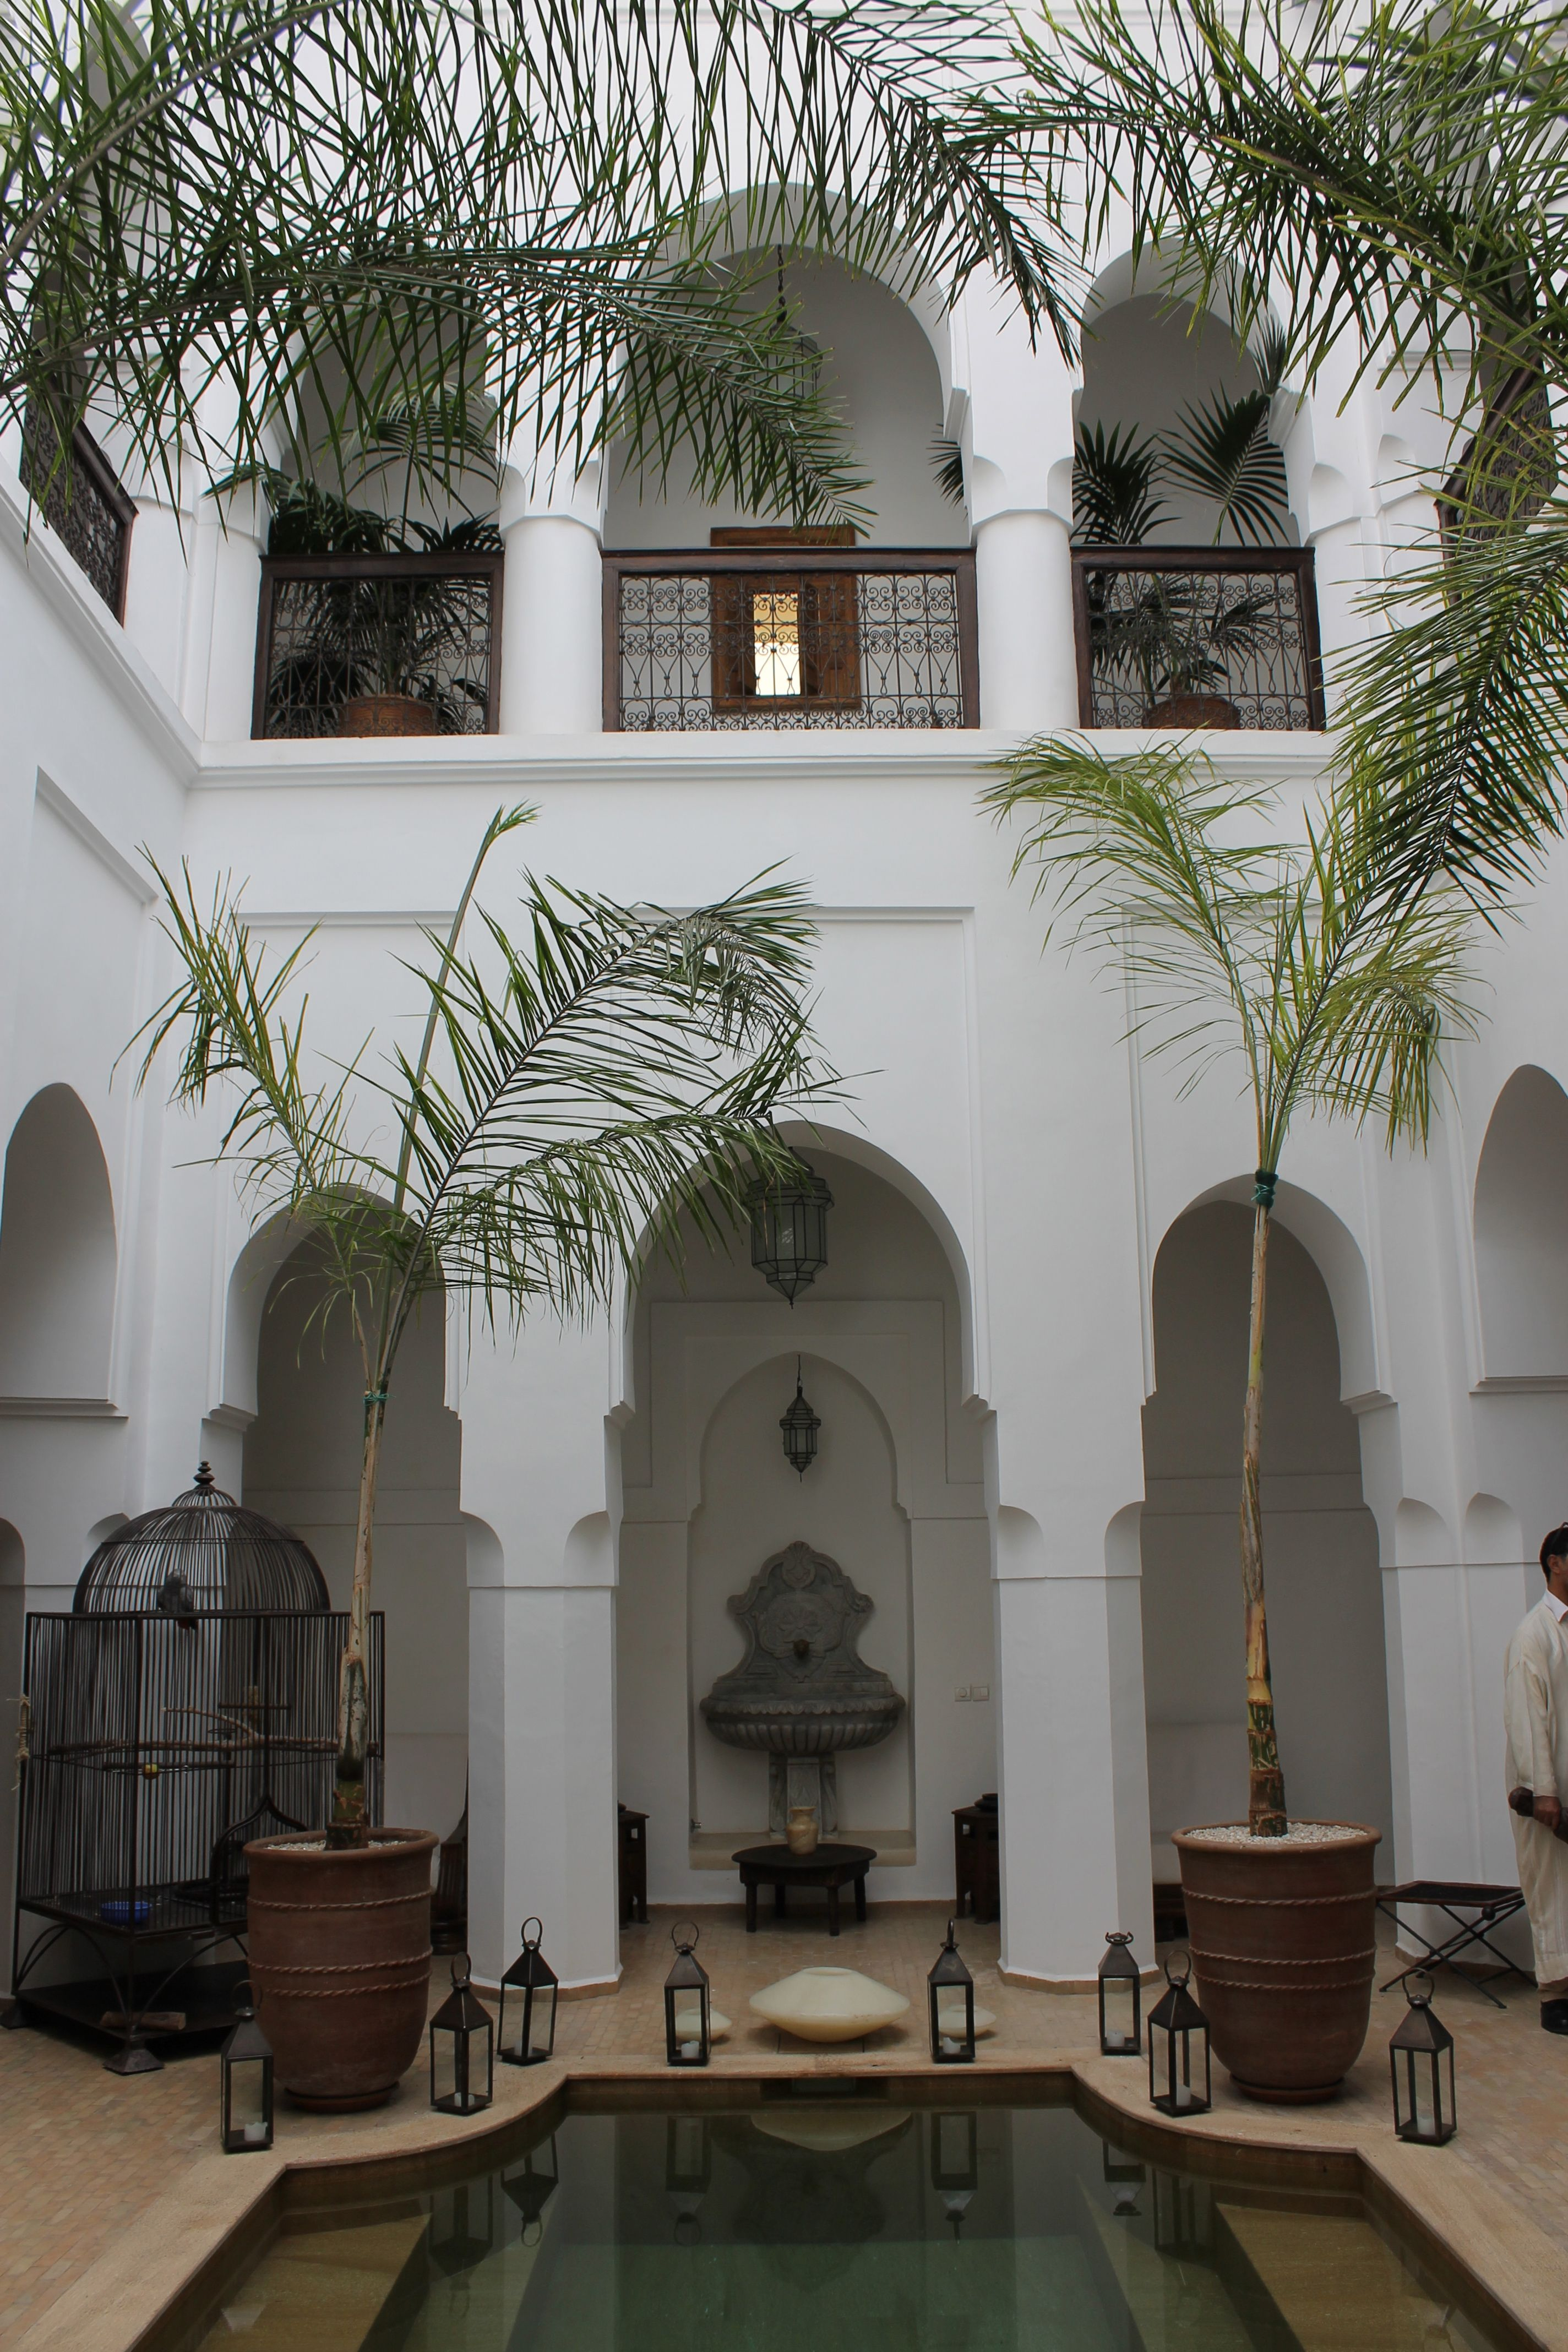 Marrakech riad with courtyard